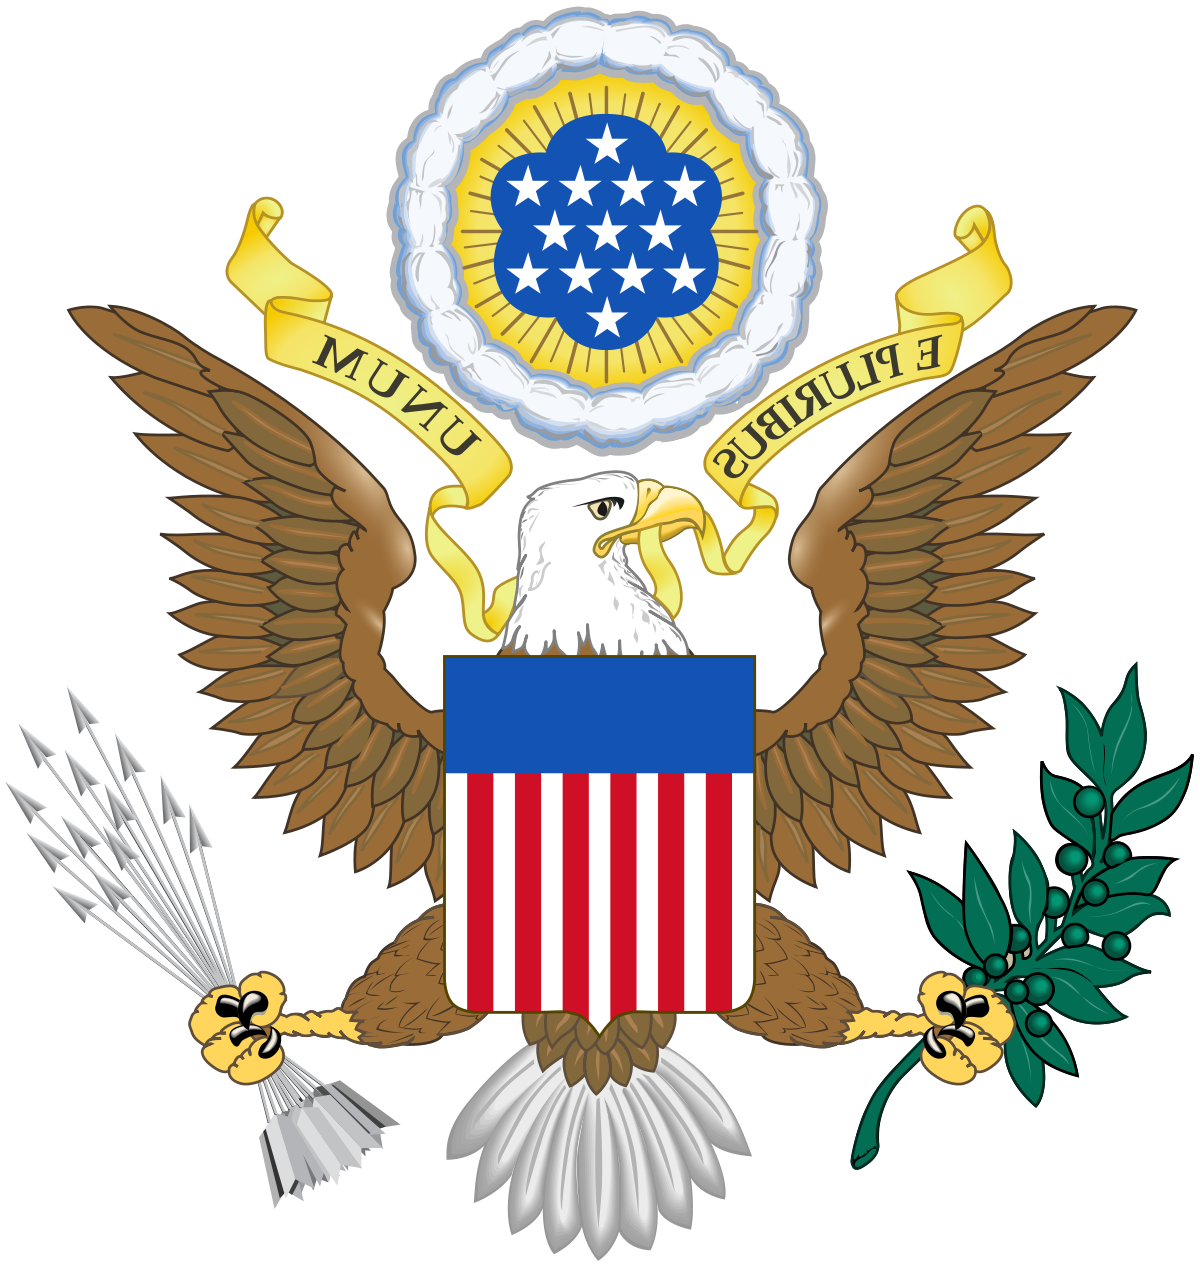 Cliparthot of congress americas. President clipart constitutional convention